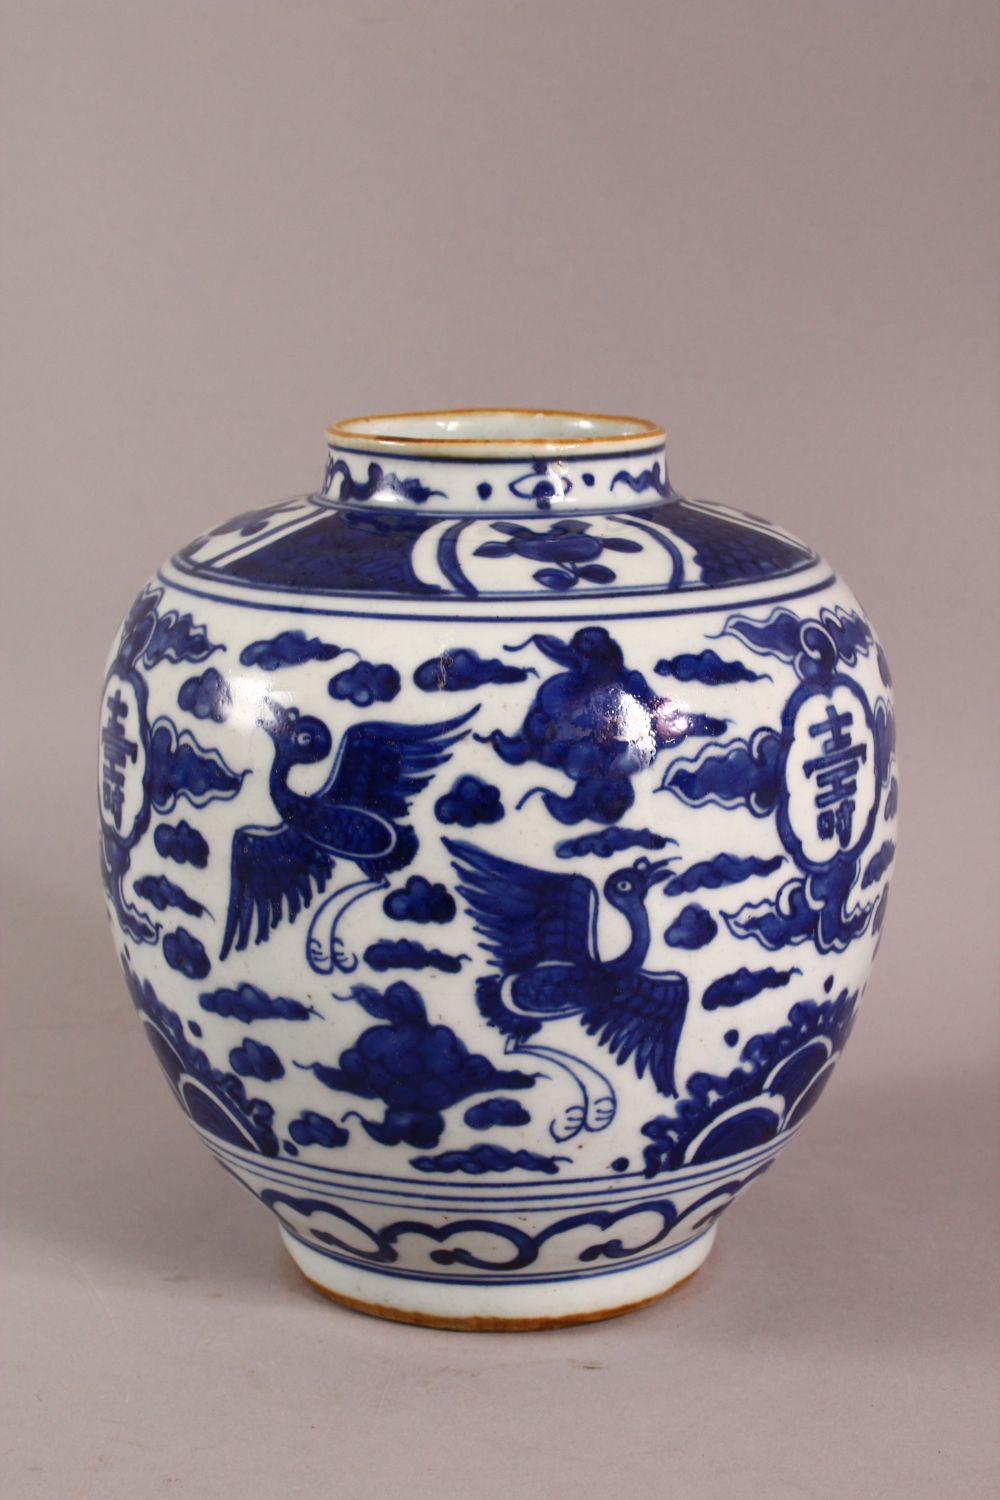 A CHINESE BLUE & WHITE PORCELAIN GINGER JAR, decorated with birds and symbols amongst clouds, rabbit - Image 3 of 7